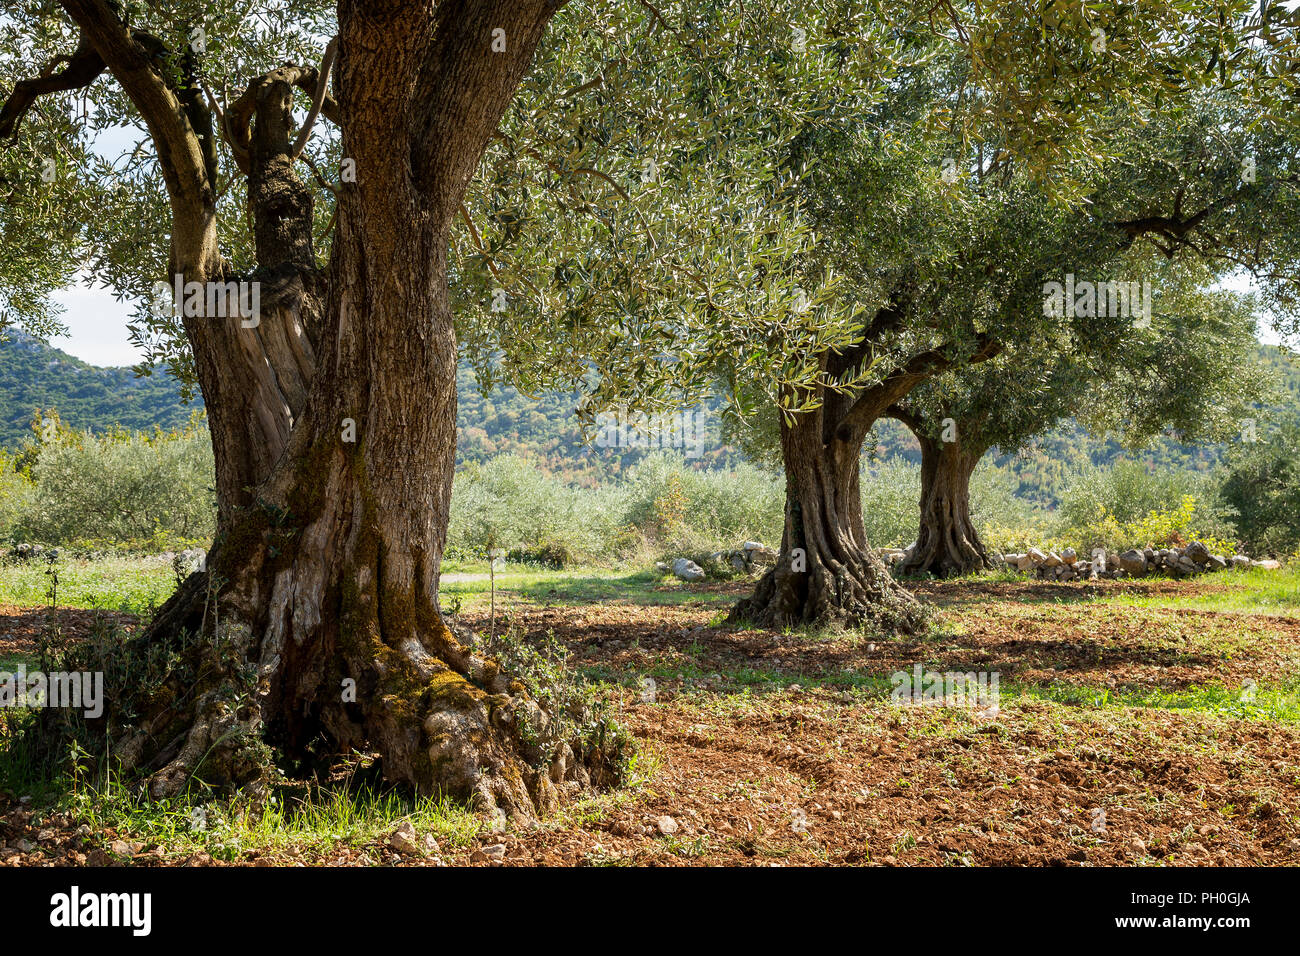 Ancient Olive Grove Stock Photos & Ancient Olive Grove Stock Images ...